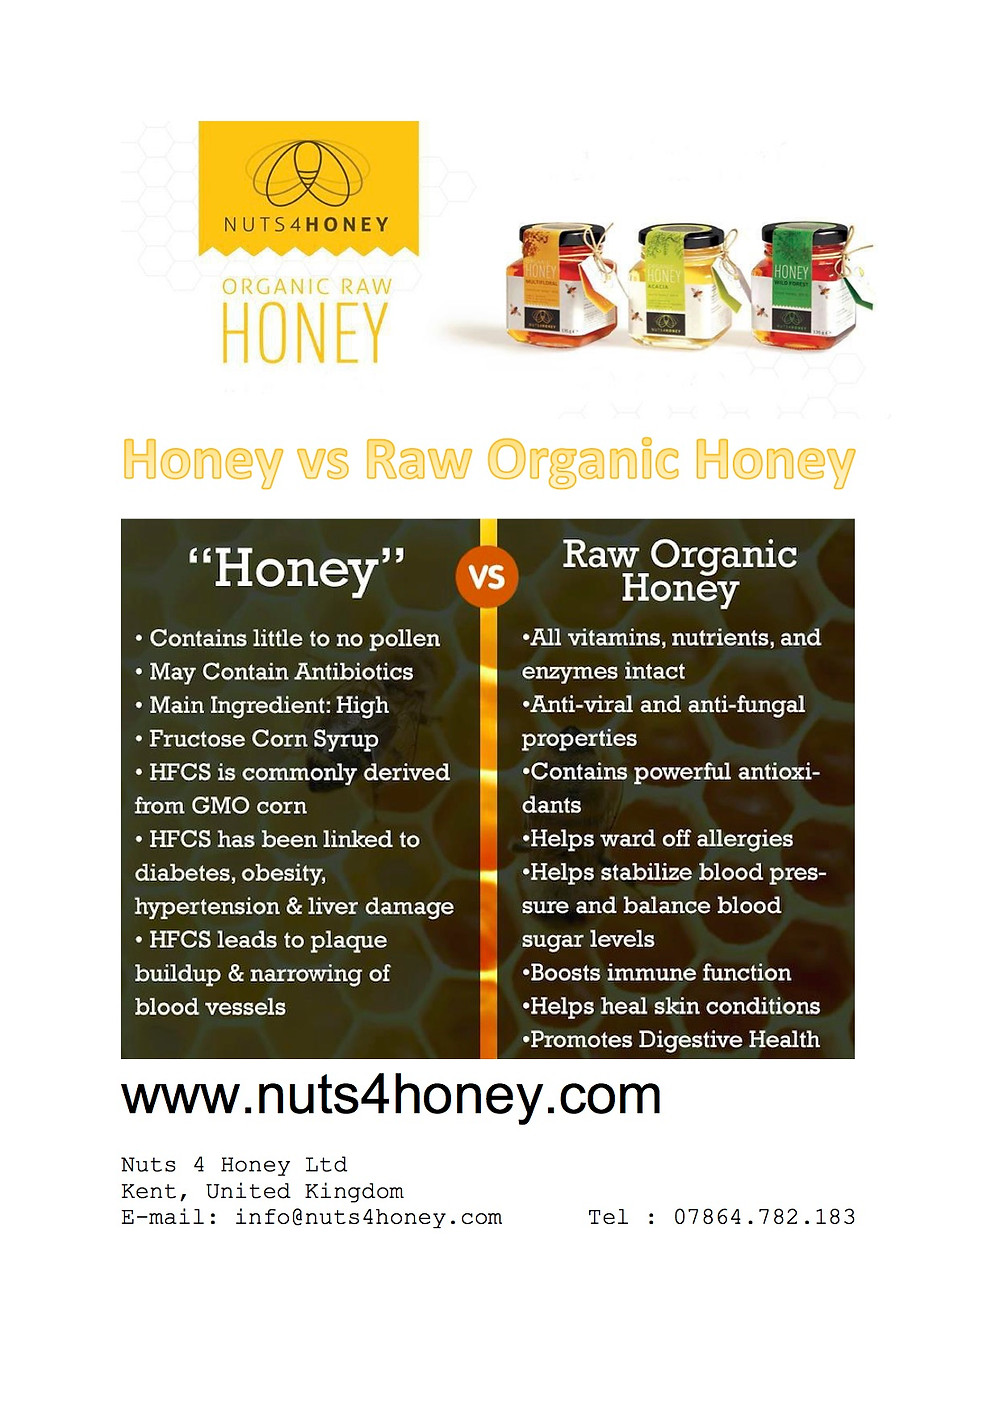 Nuts4honey Organic Raw Honey